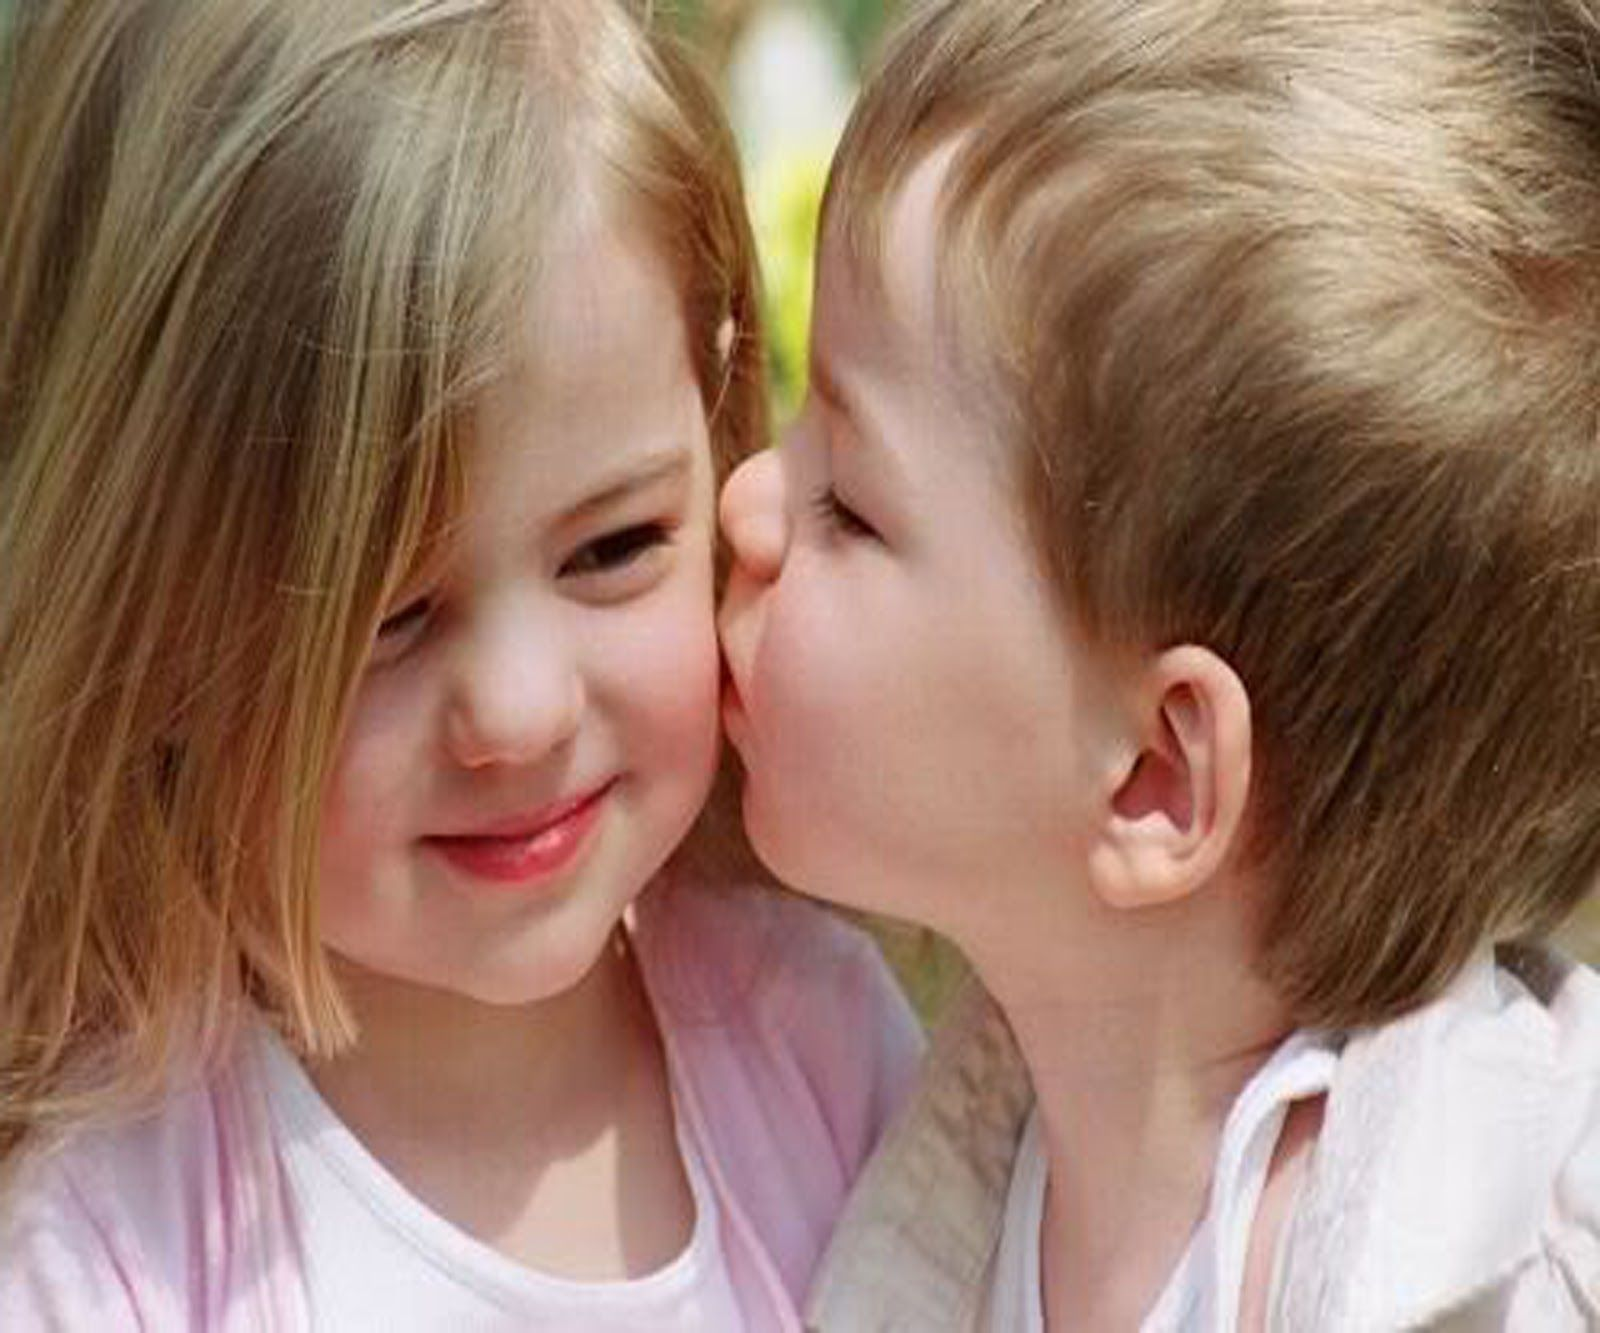 17 Best images about Baby kisses Baby kiss New 1600x1333